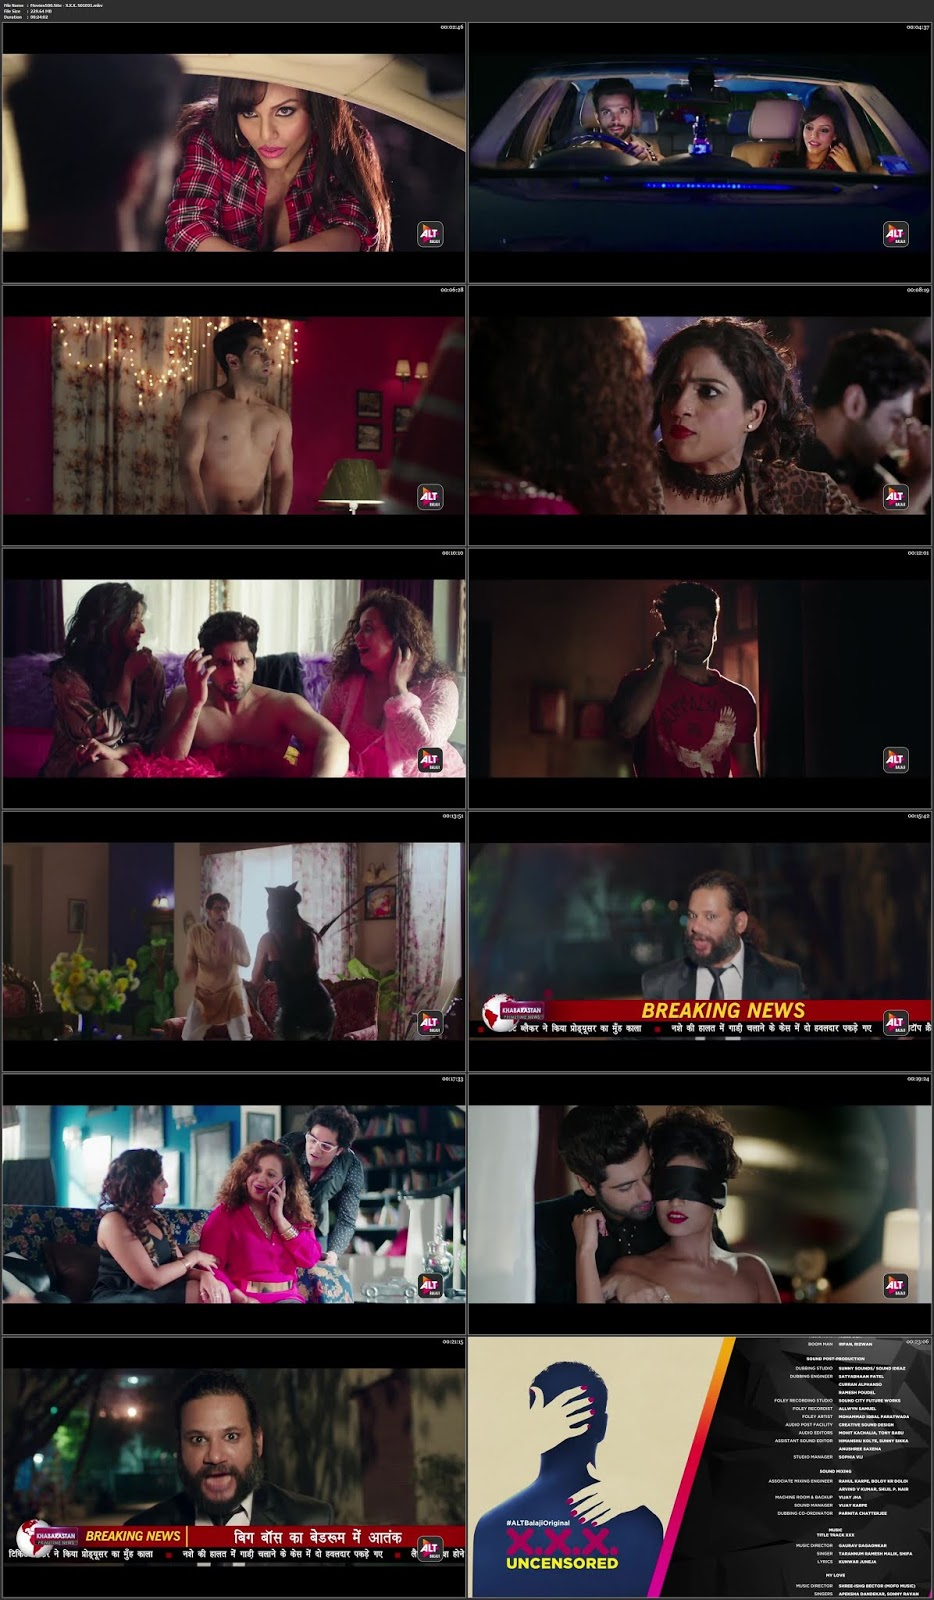 XXX UNCENSORED 2018 18+ AltBalaji Season 1 Complete 720p